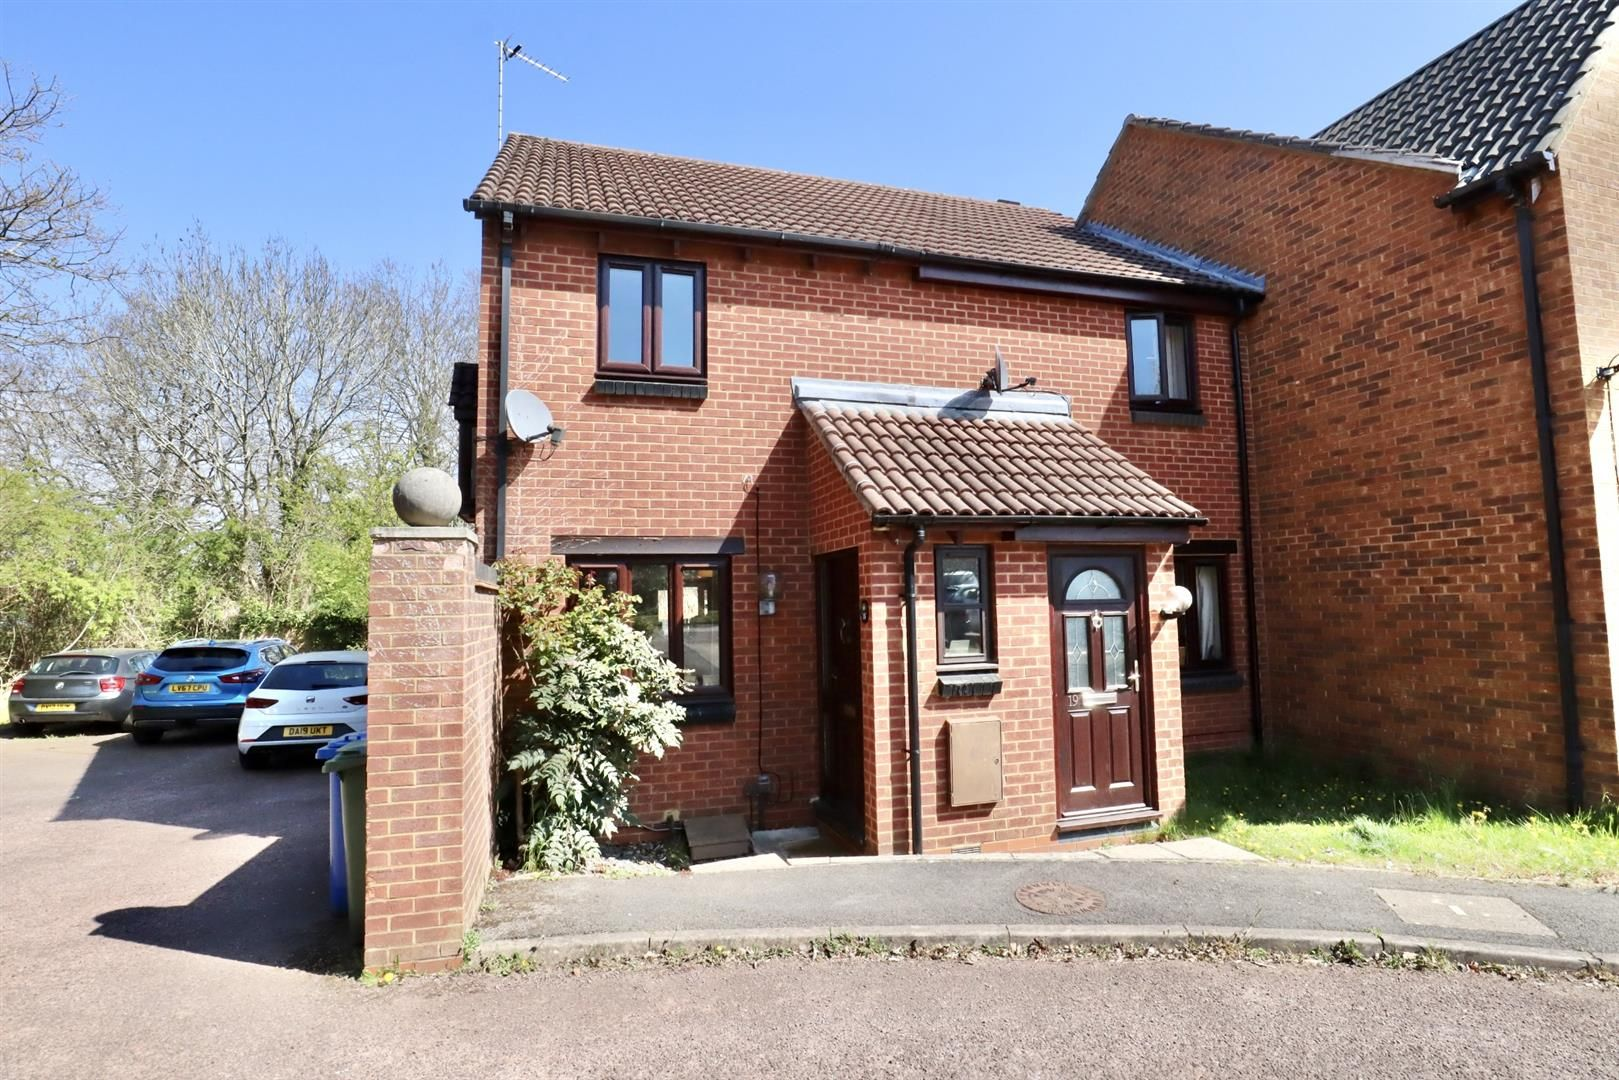 2 bed end of terrace for sale, RG42